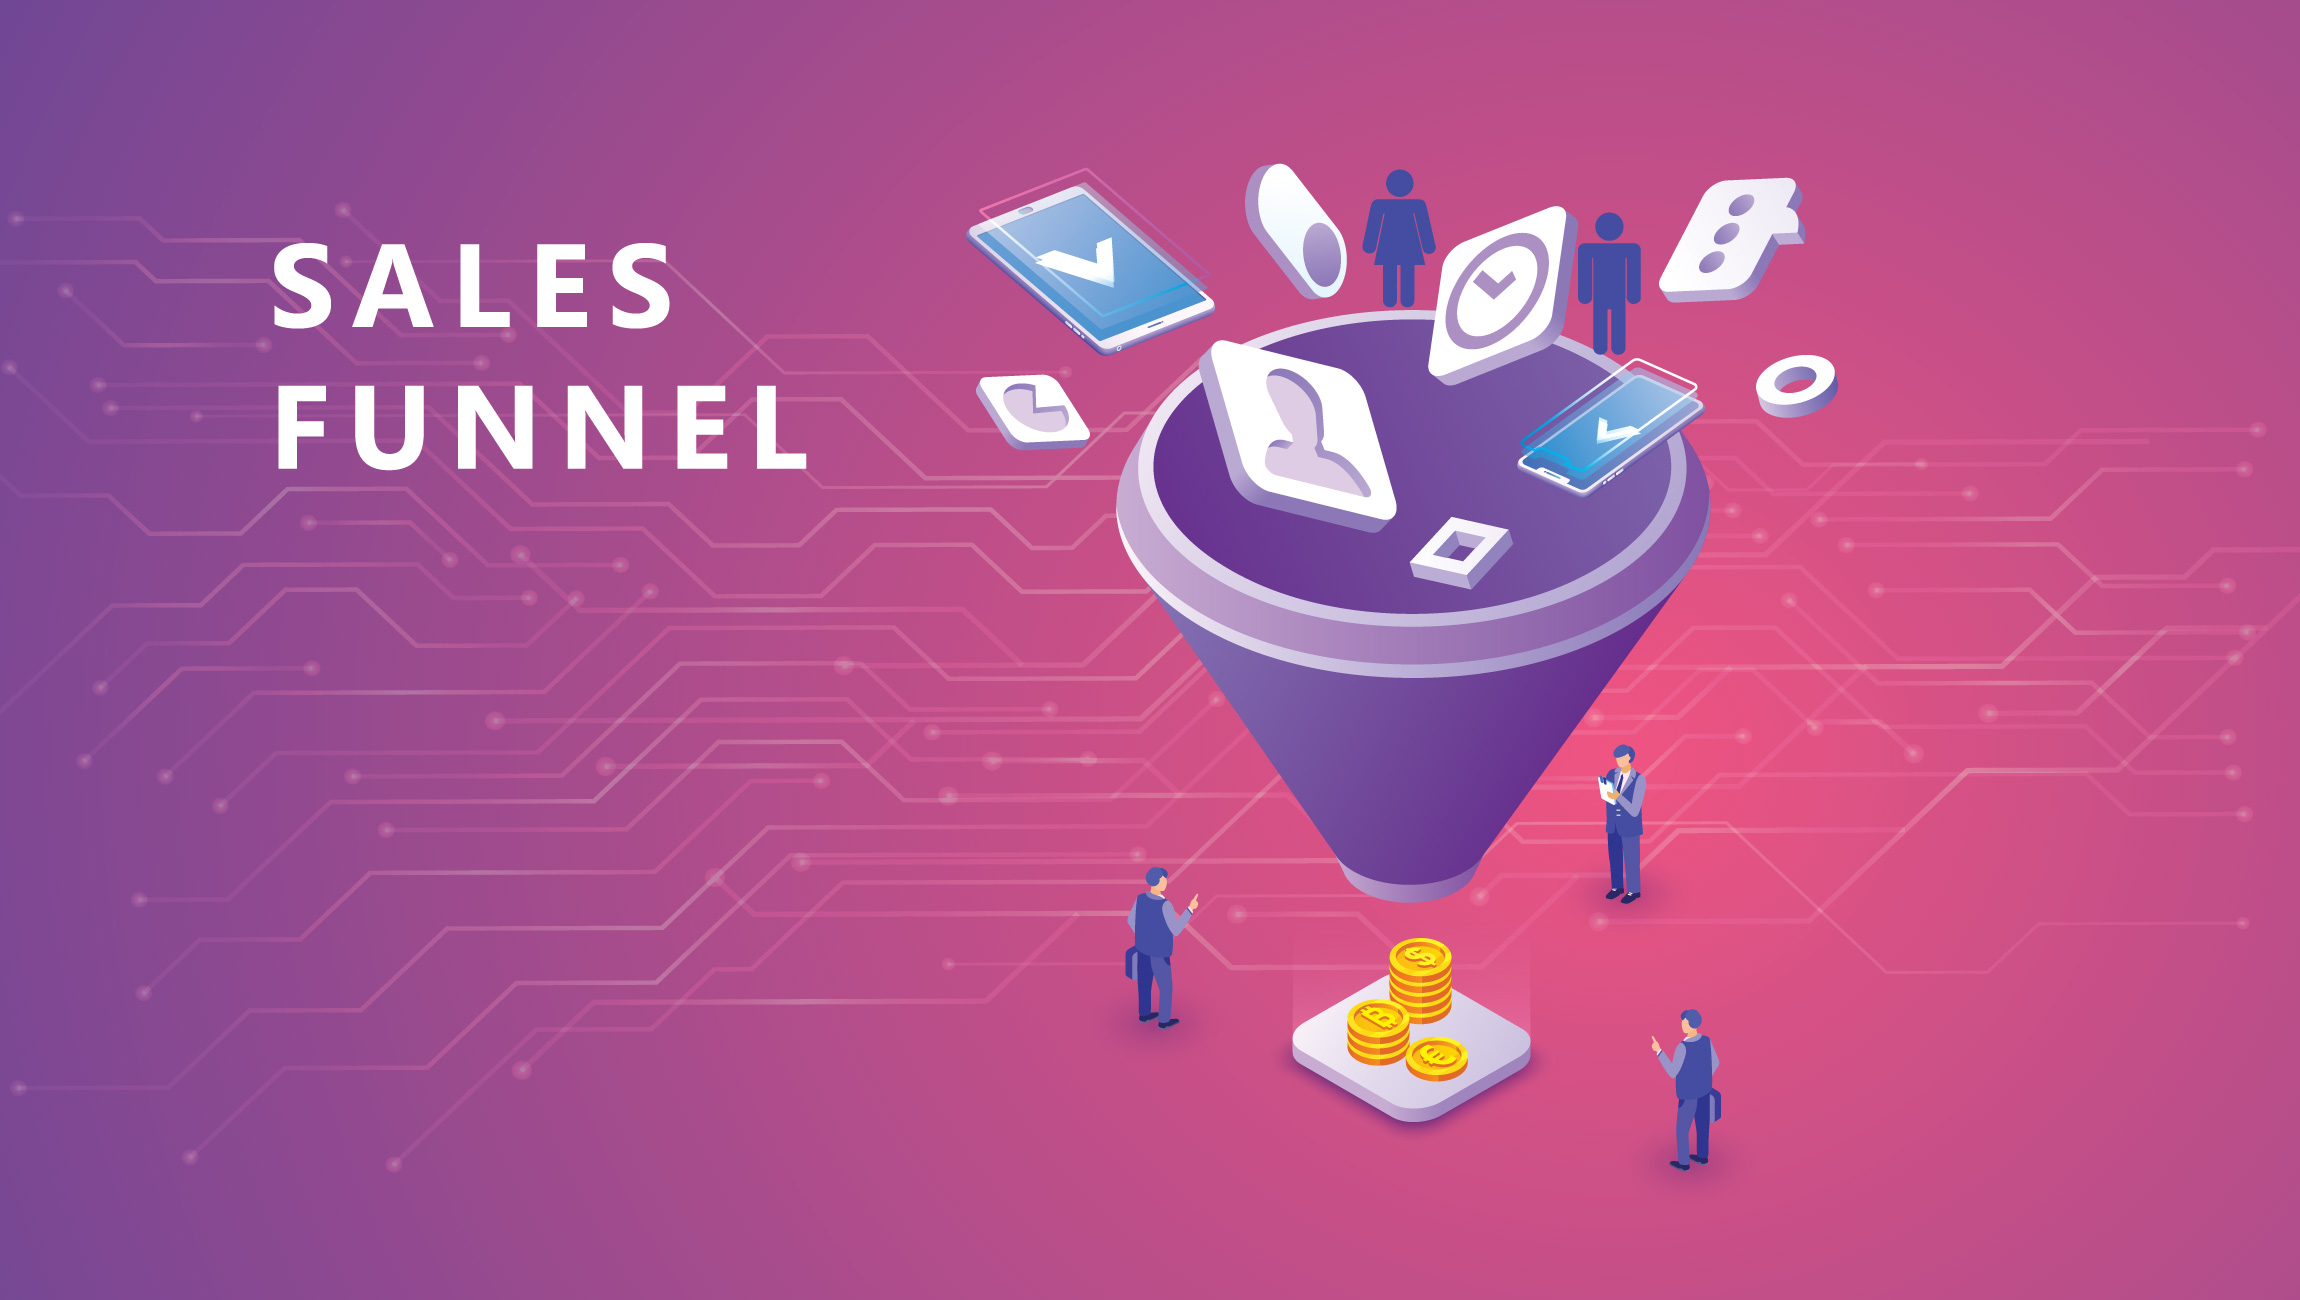 How to Align Content Down the Sales Funnel | SalesTechStar